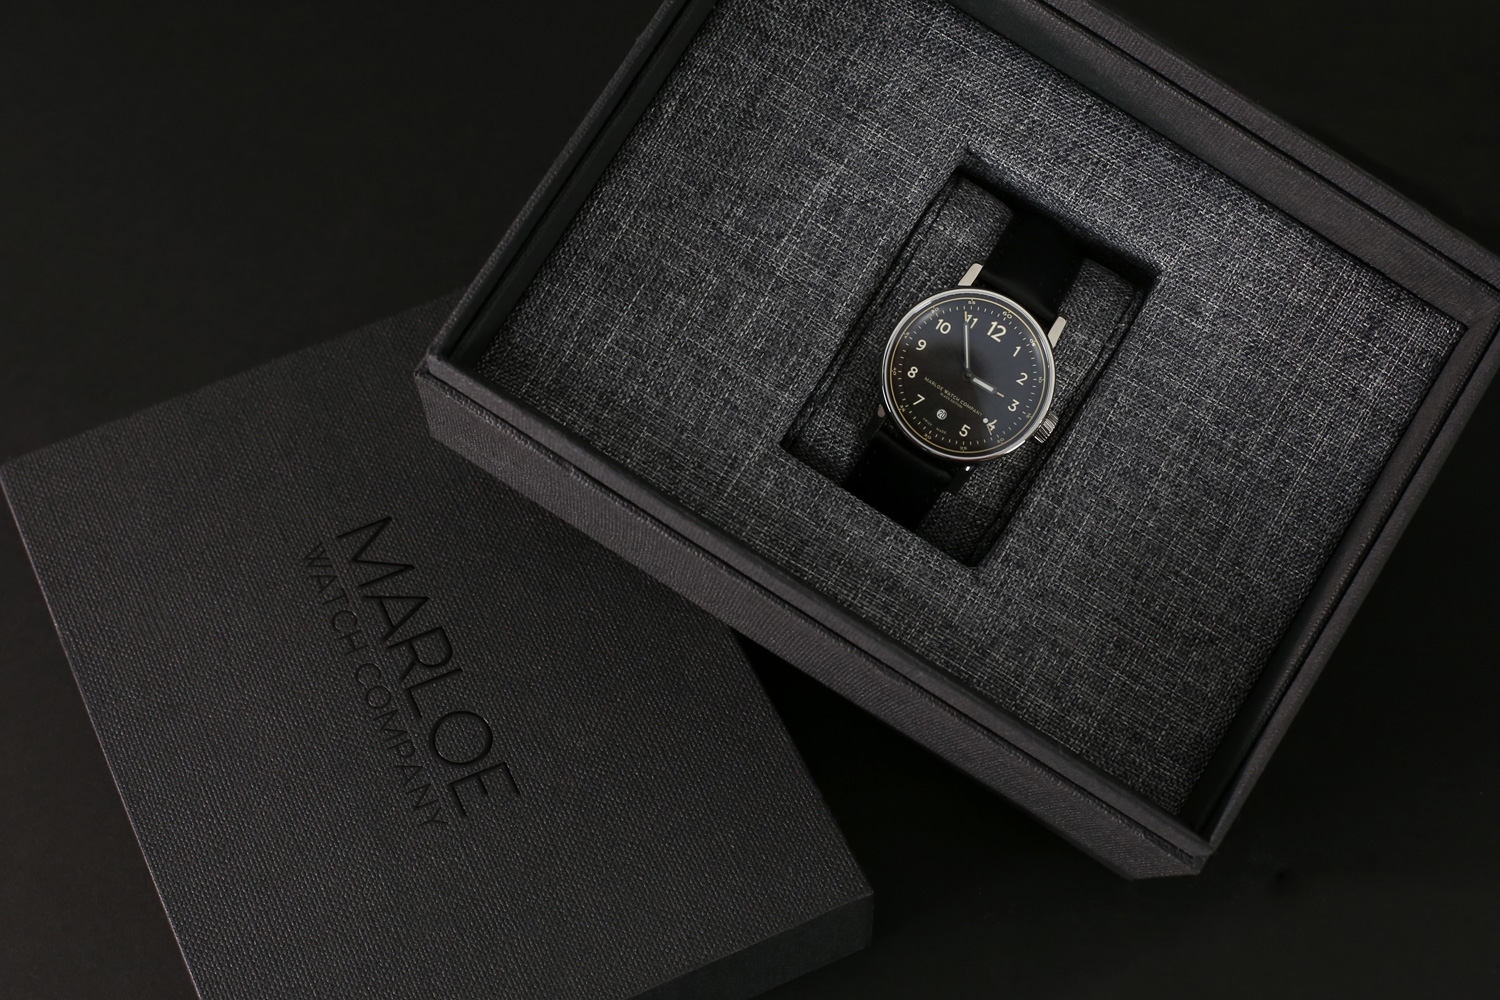 Progress Packaging Production Manufacture Luxury Watch Box Timepiece Print Retail Fsc Approved Recyclable Eco Friendly Creative Bespoke 2